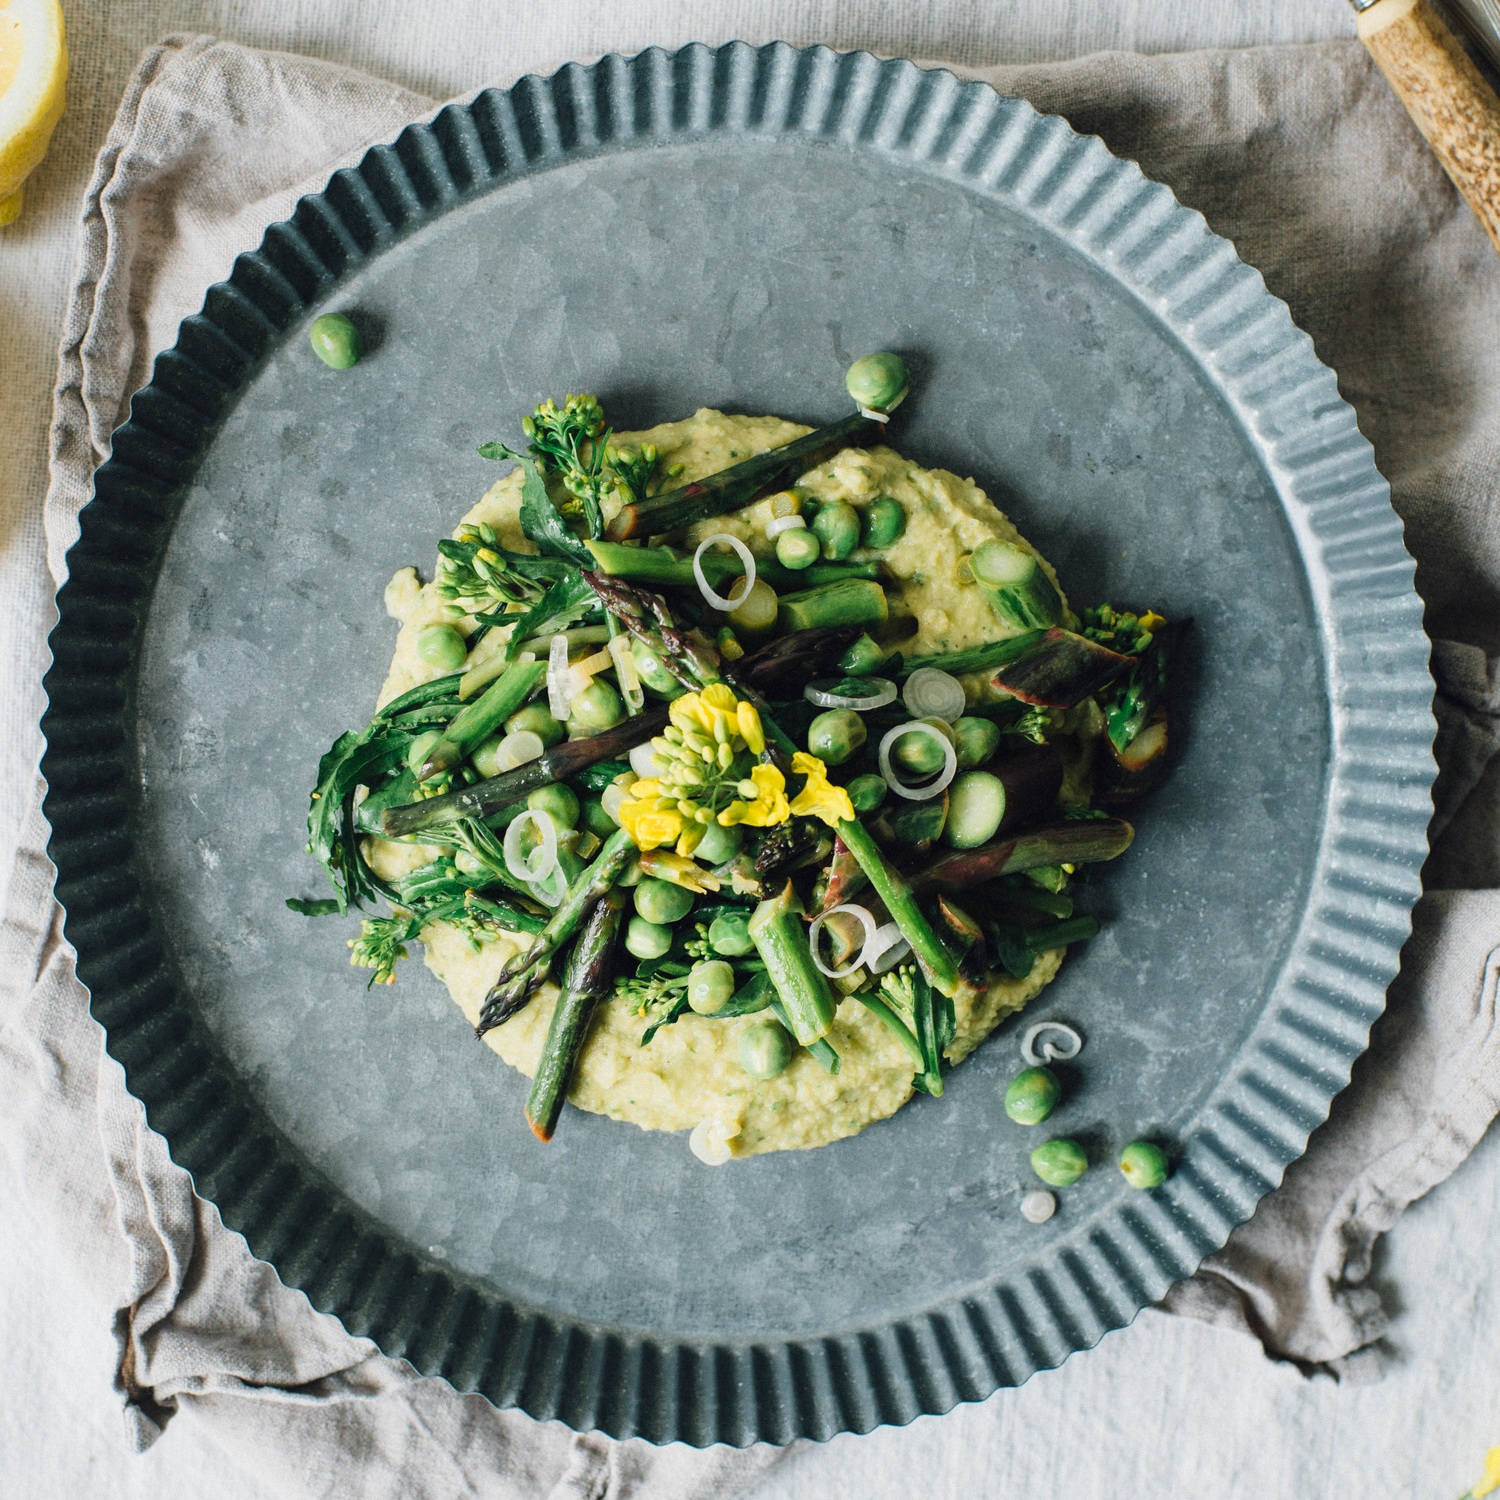 ASPARAGUS, PEA & BROCCOLI RABE SAUTÉ OVER A CHICKPEA & CHIVE MASH